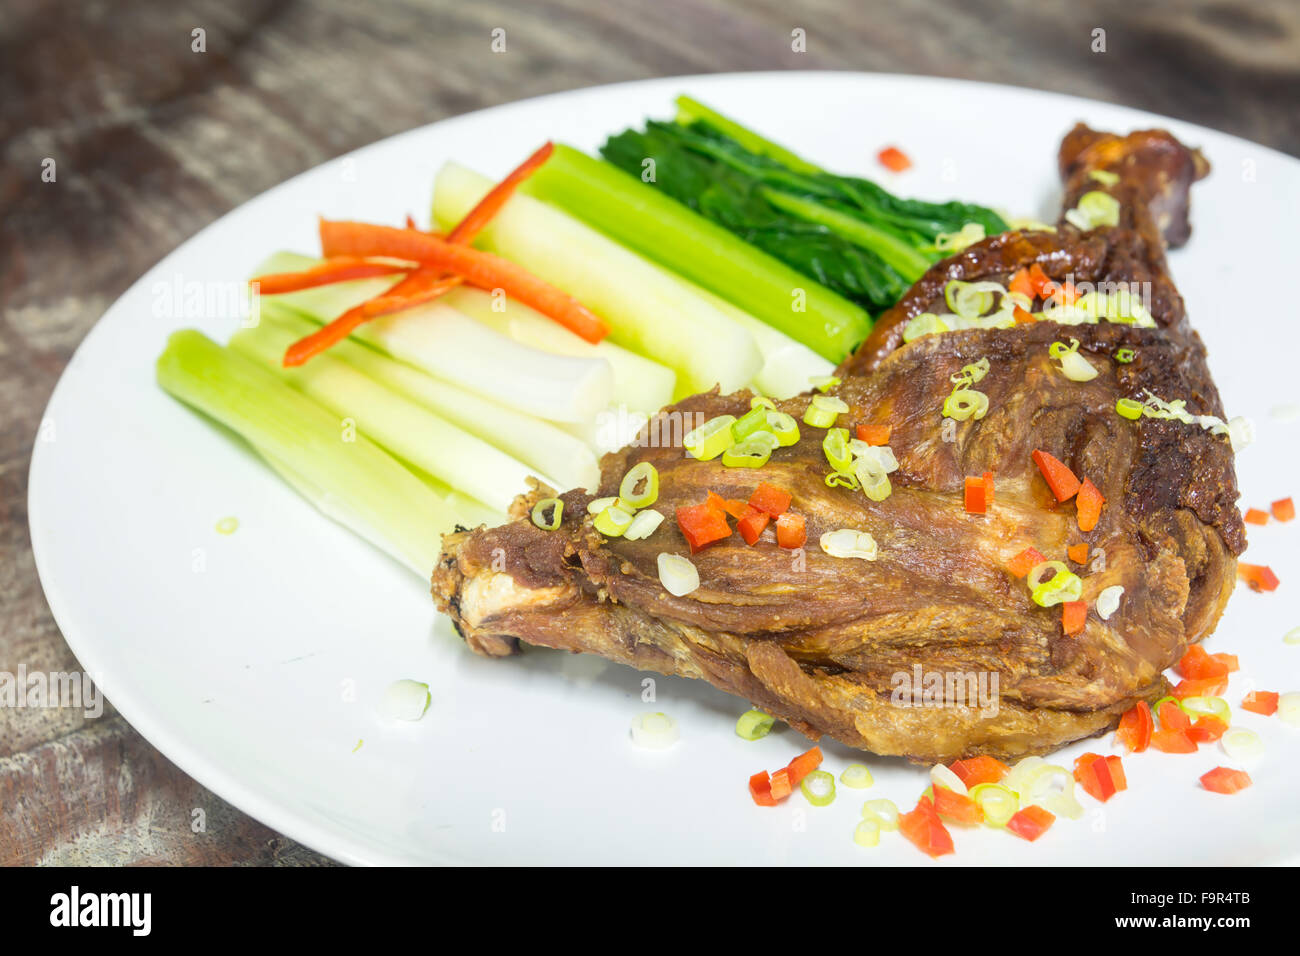 crispy duck drumstick, deep fried and eat with slice cucumber, flowering cabbage and onion spring, garnish on white - Stock Image